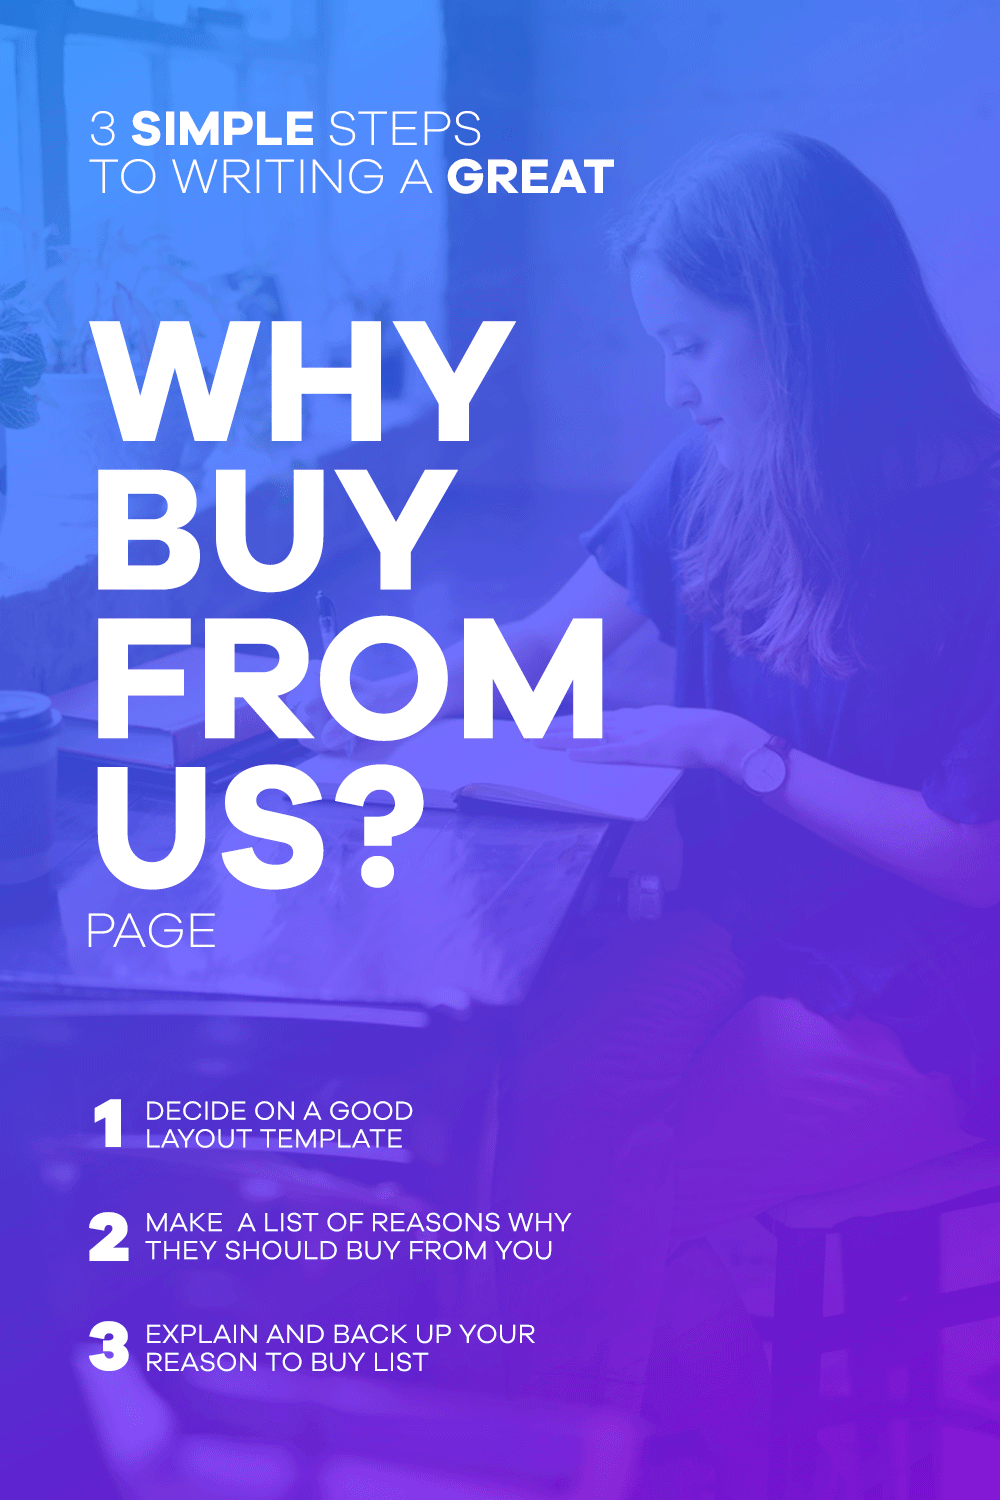 3 Simple Steps to Writing A Why Buy From Us Page